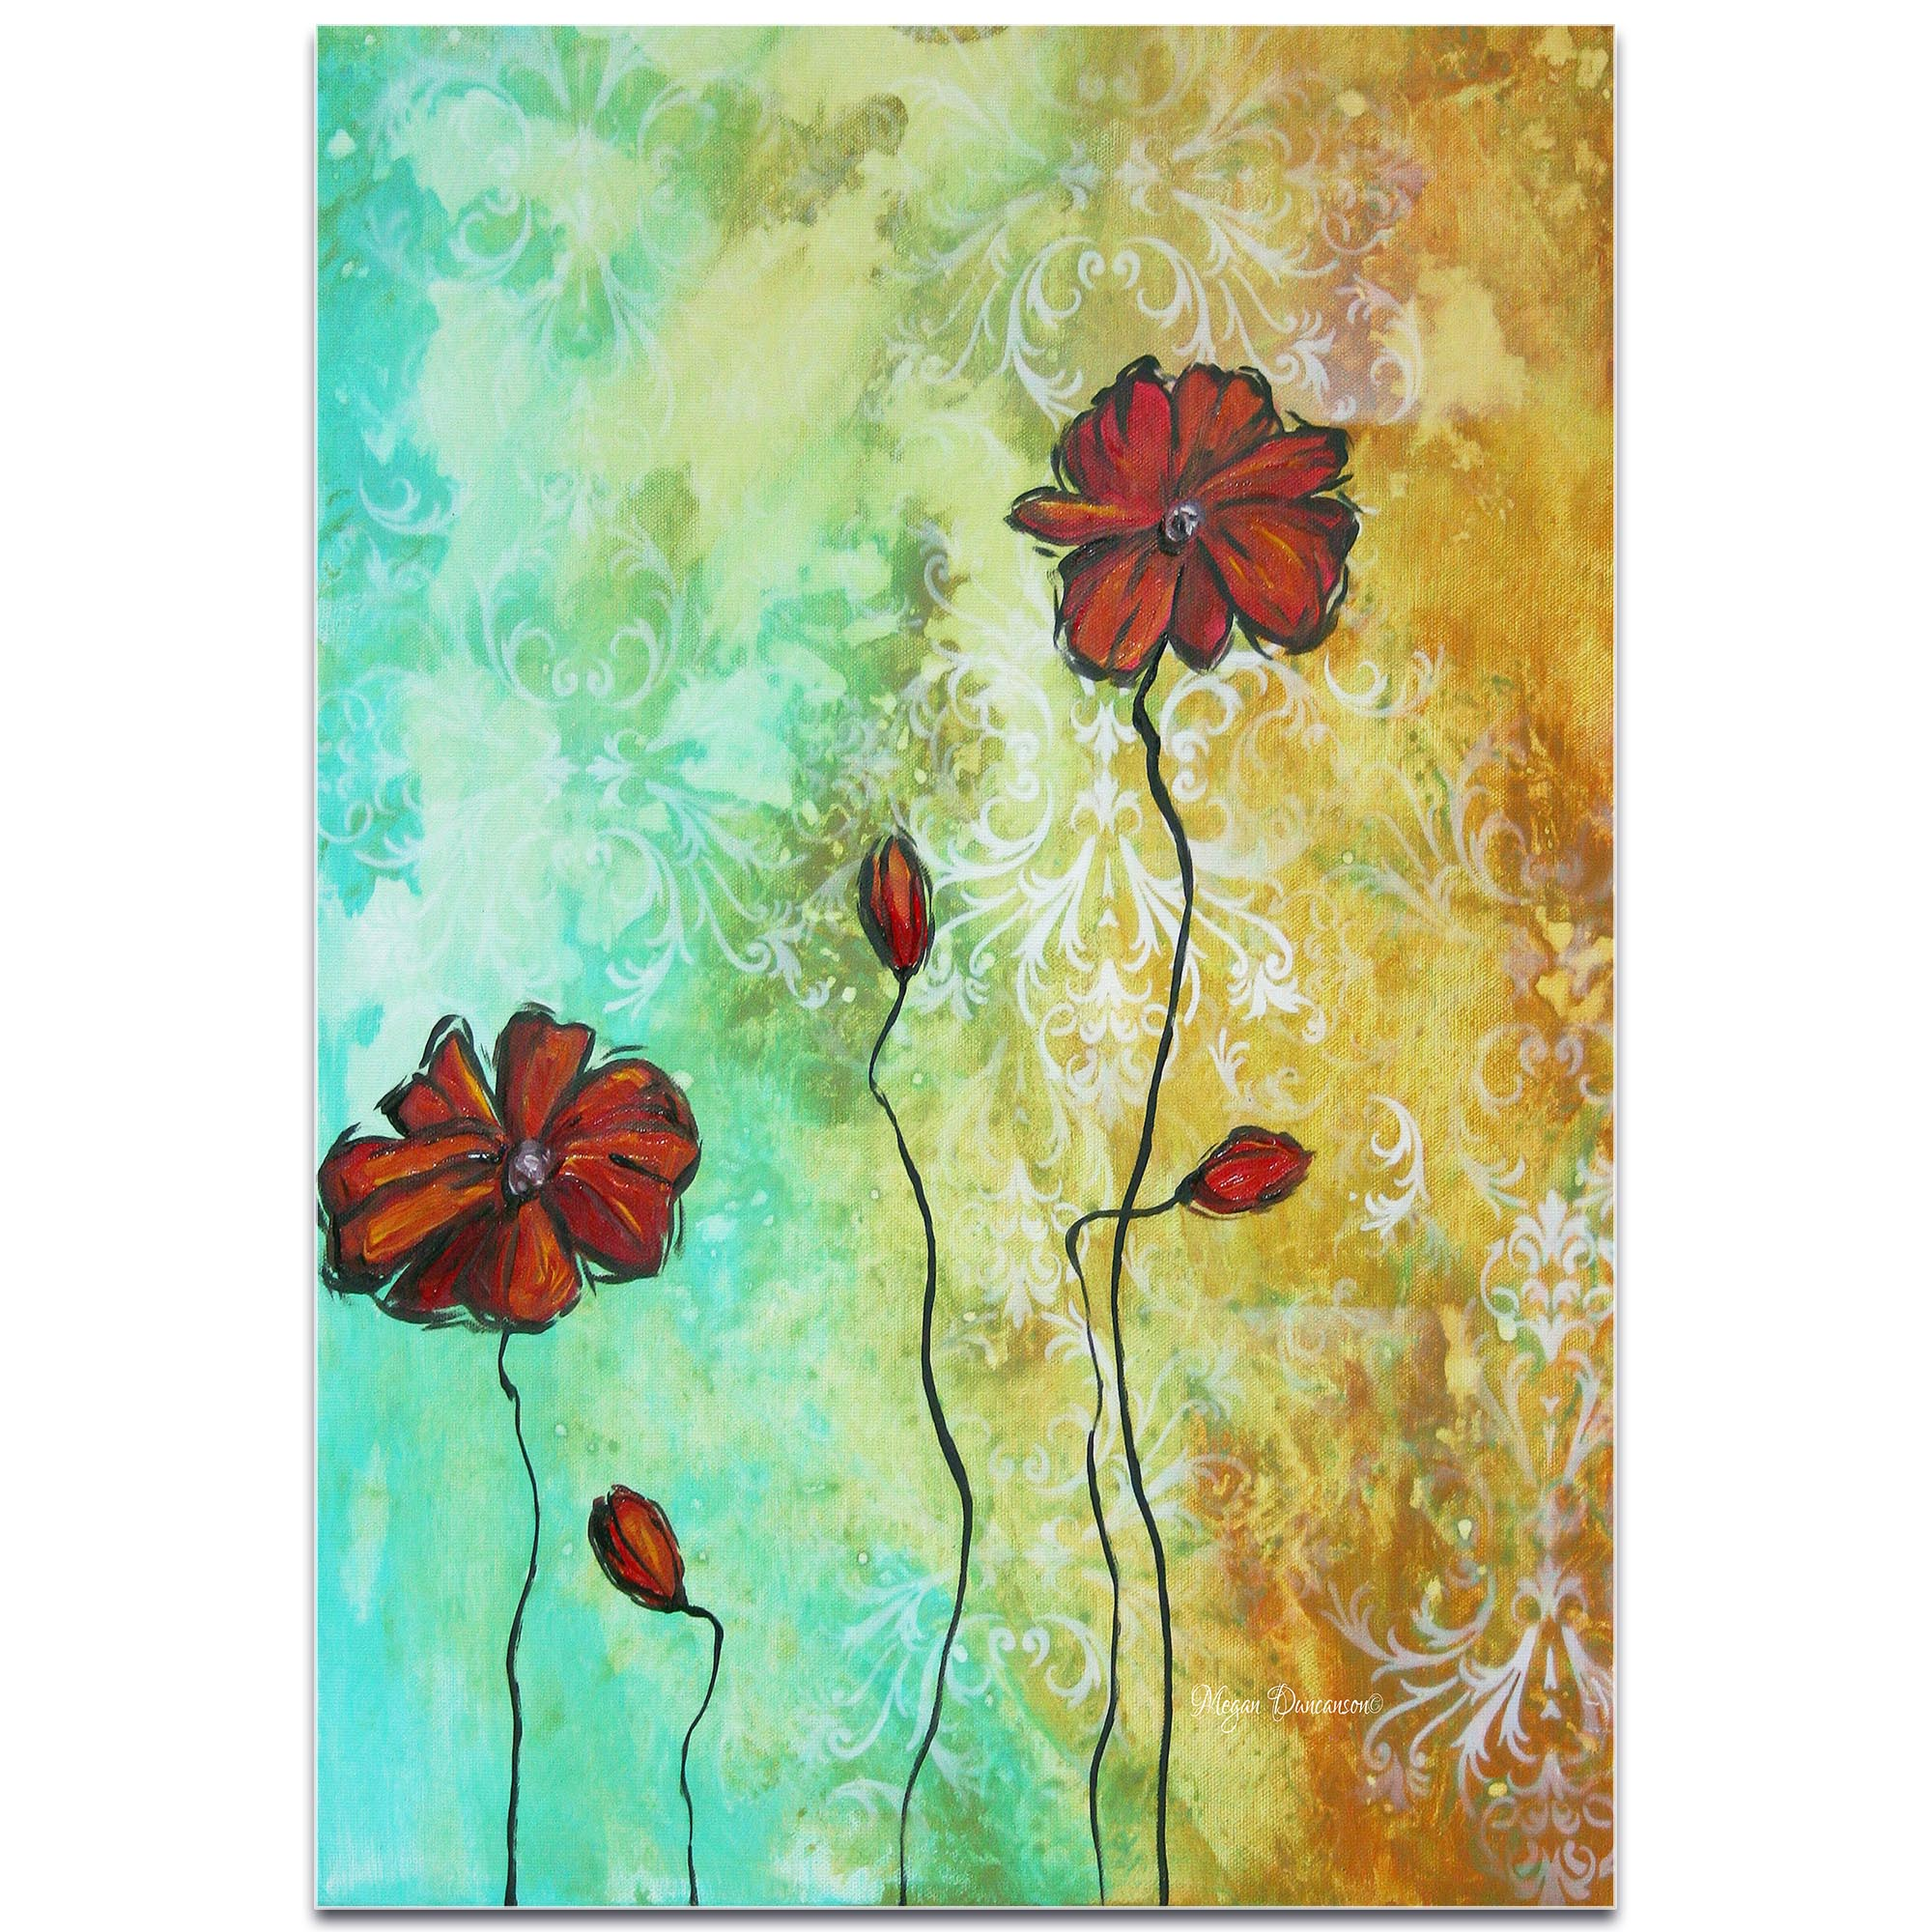 Flower Painting 'Poppy Love' - Abstract Flower Art on Metal or Acrylic - Image 2